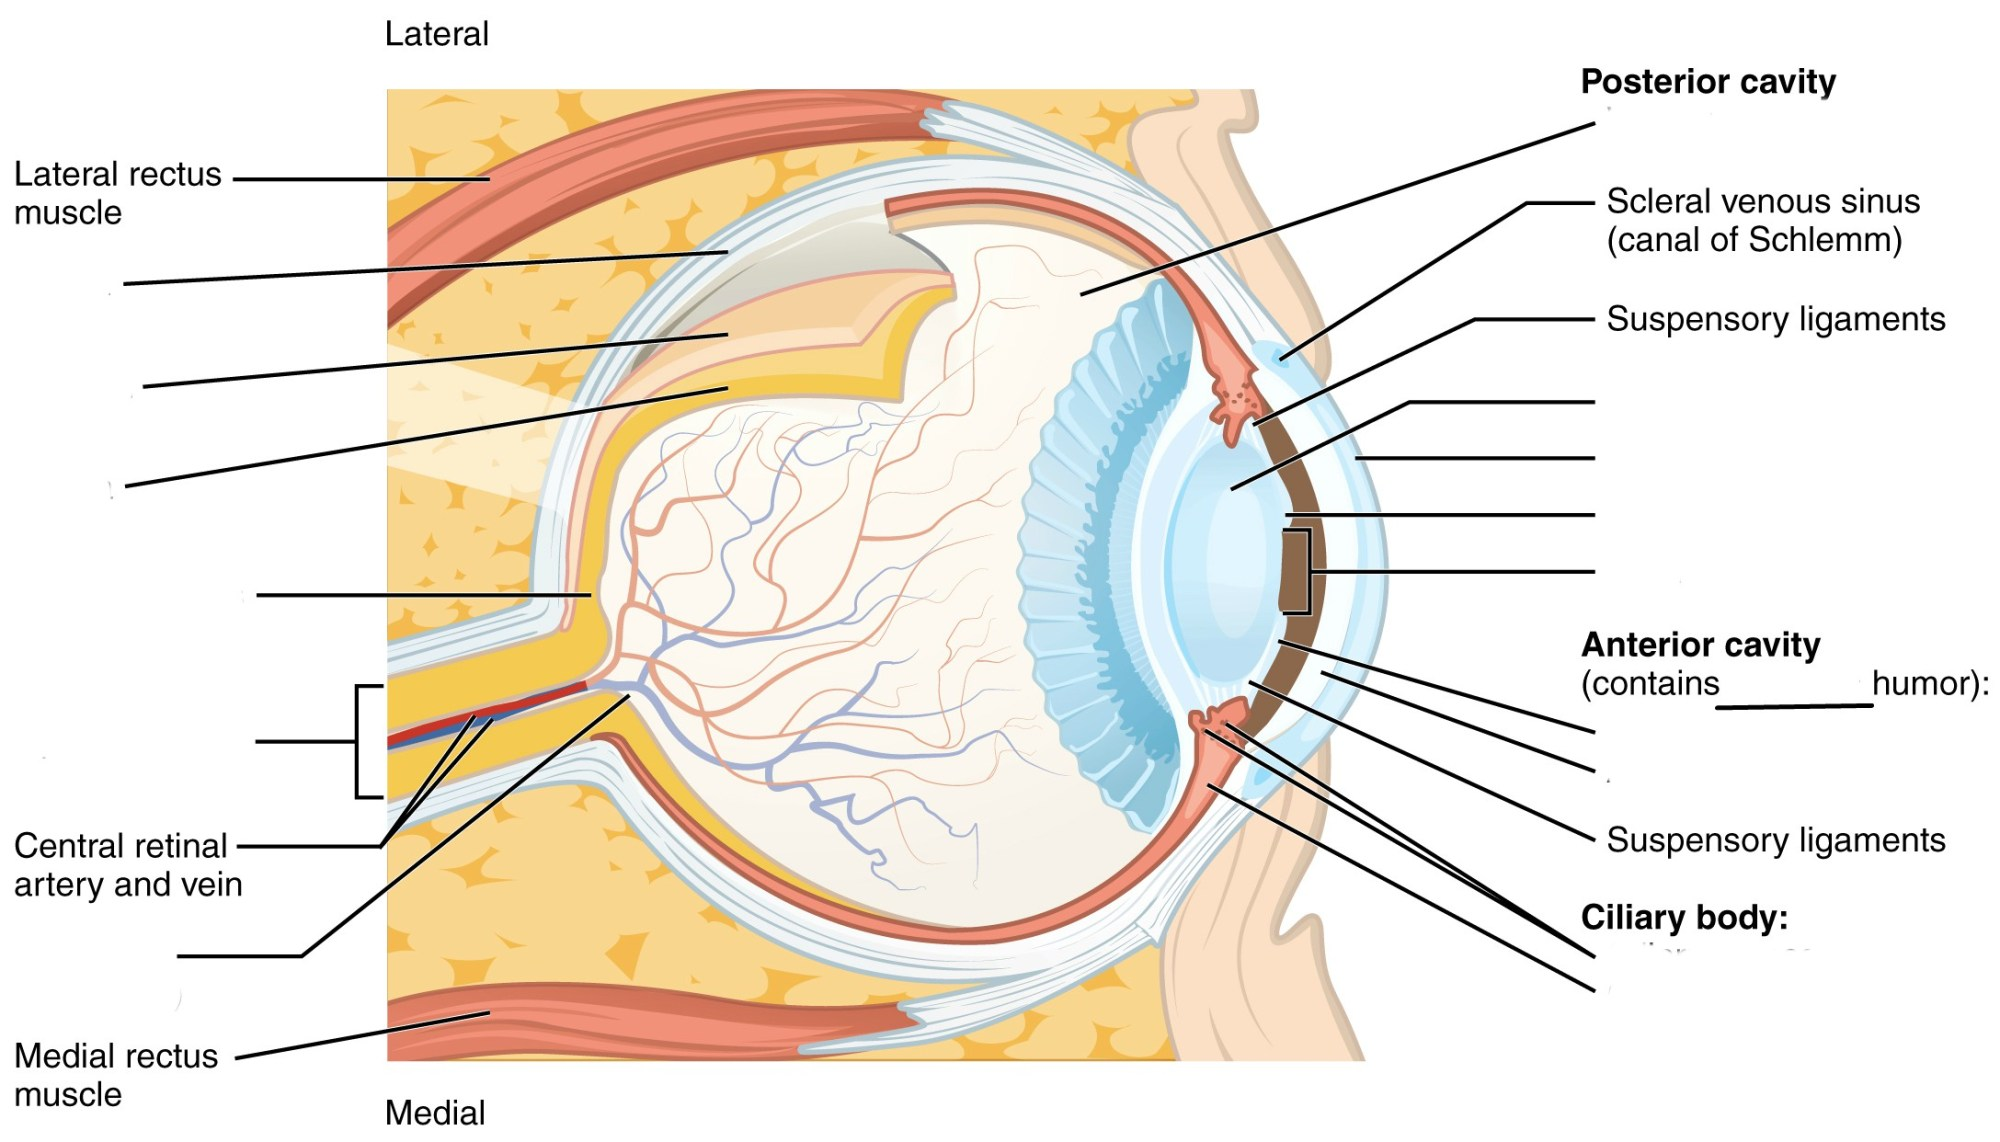 hight resolution of predefined space to label the structures and regions of the human eye anatomy